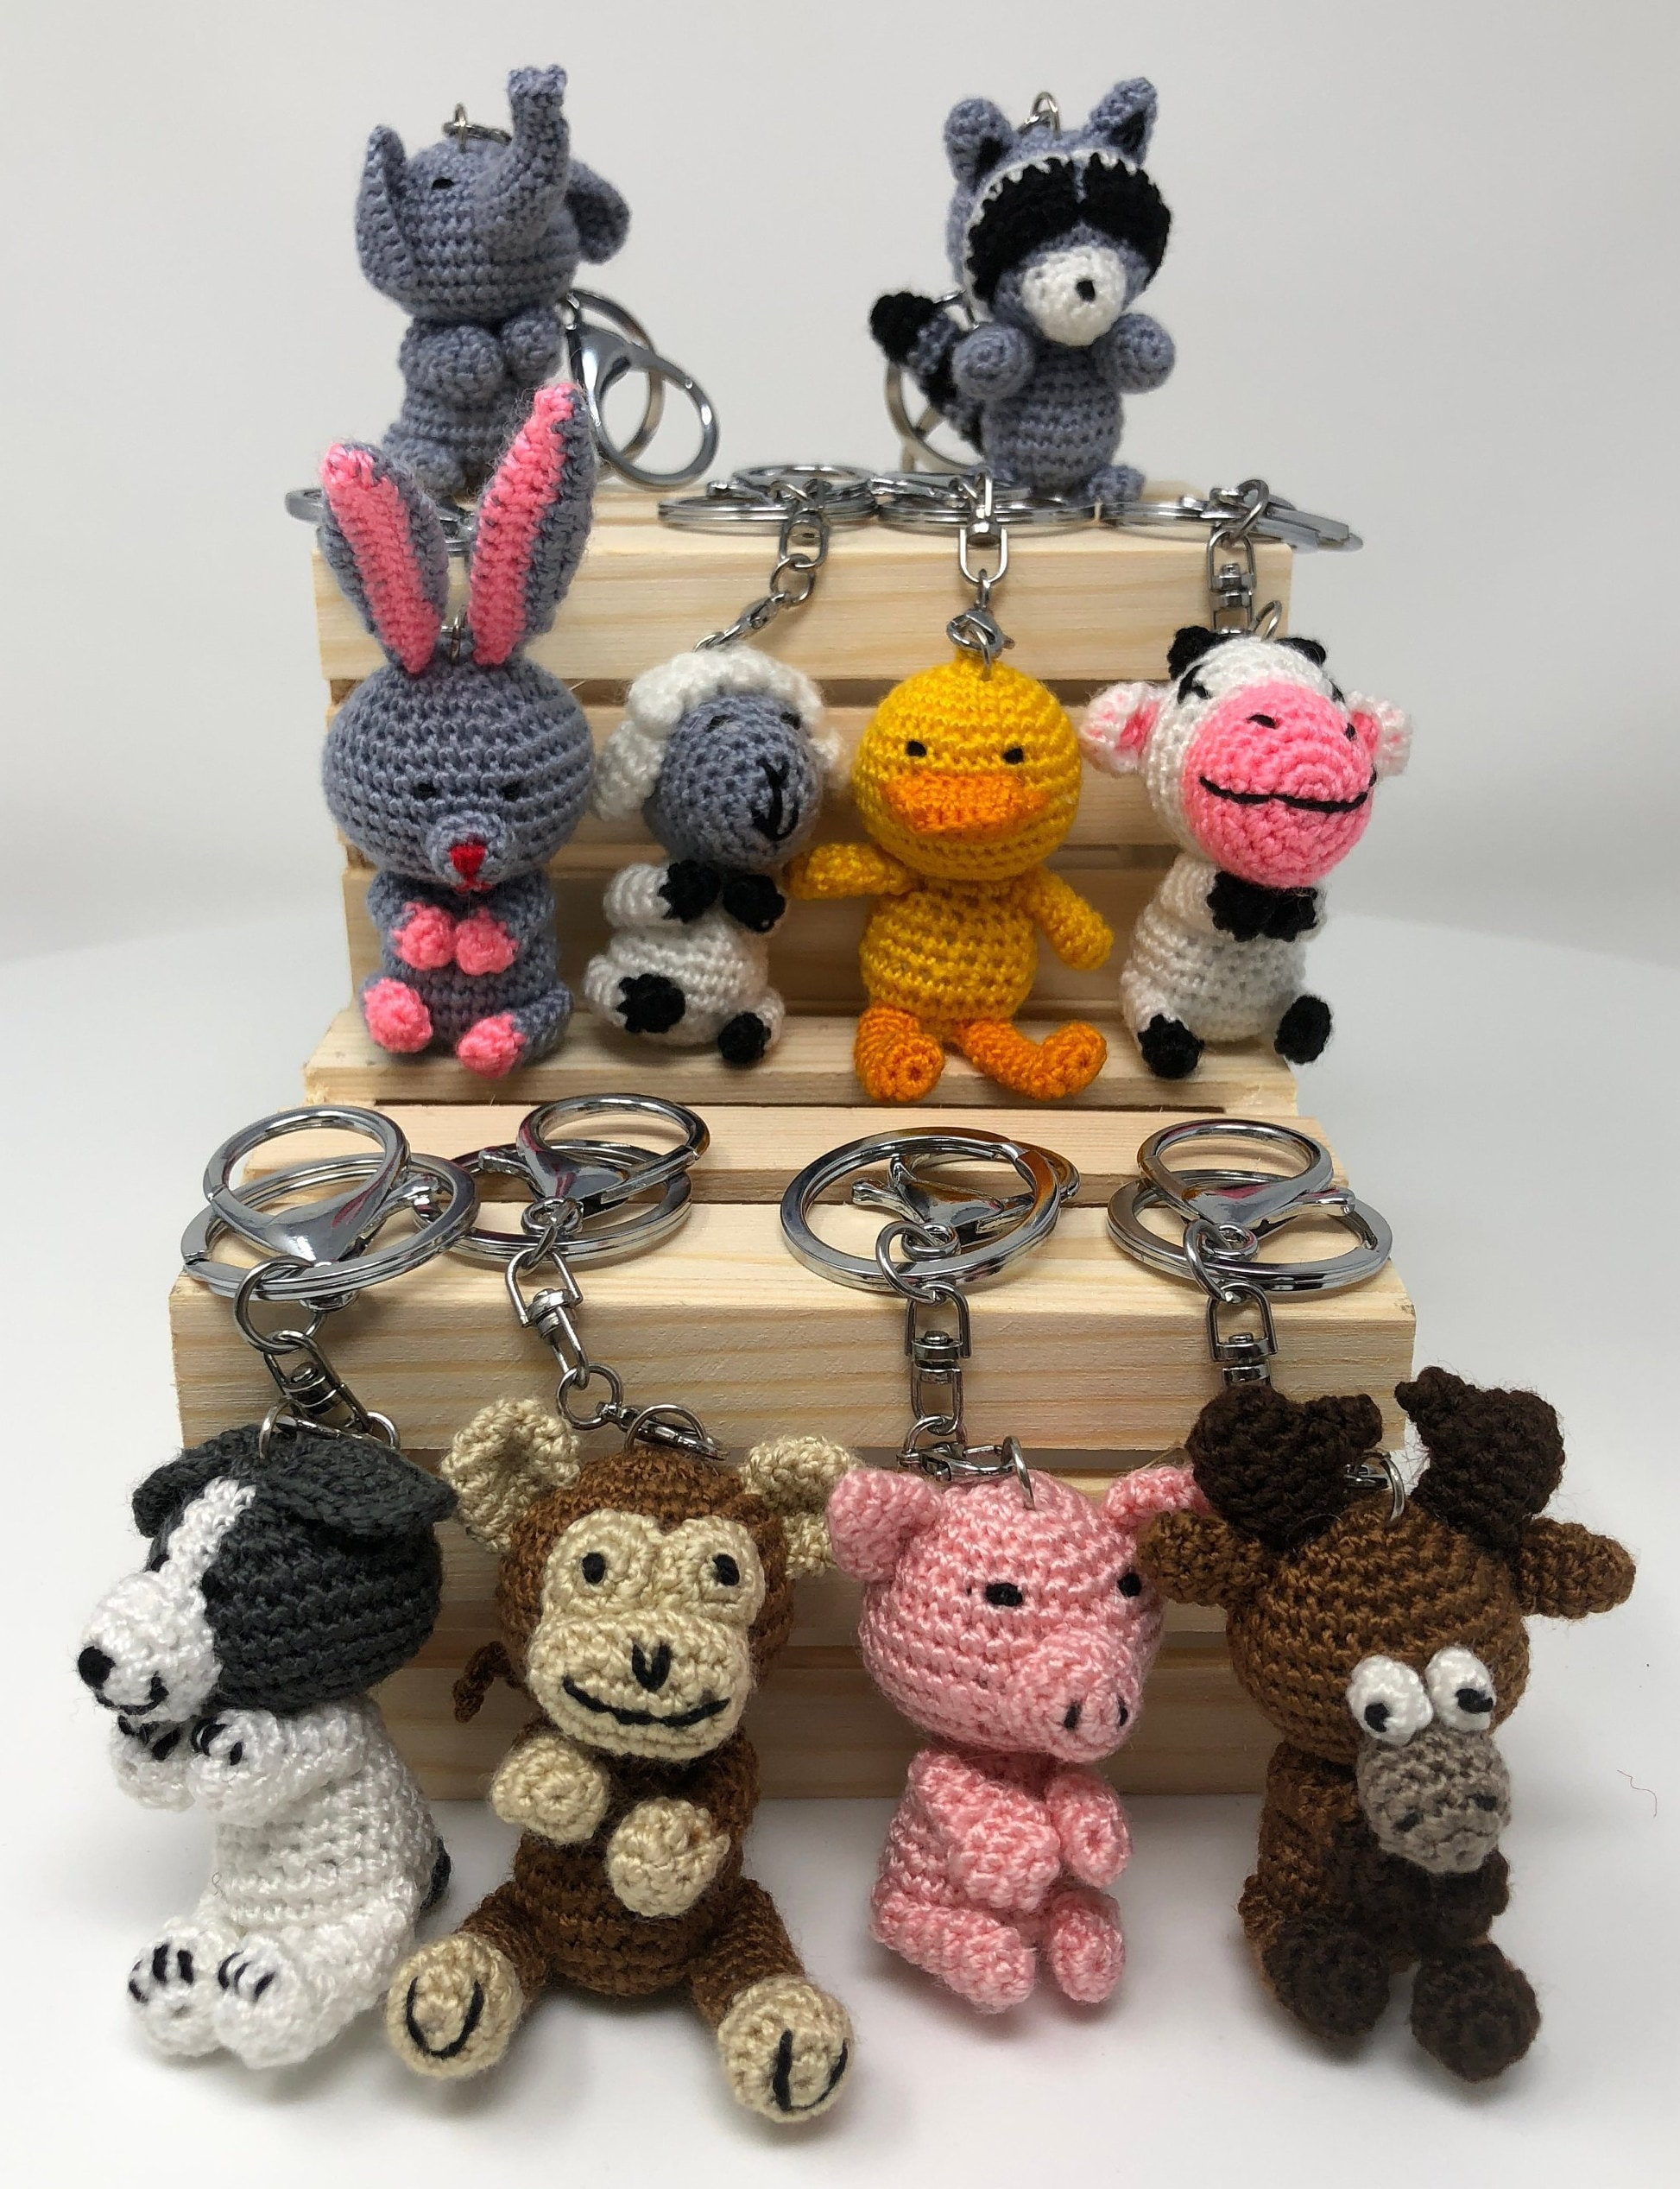 Amigurumi Cute Sheep Free Pattern - Crochet.msa.plus | 2535x1946